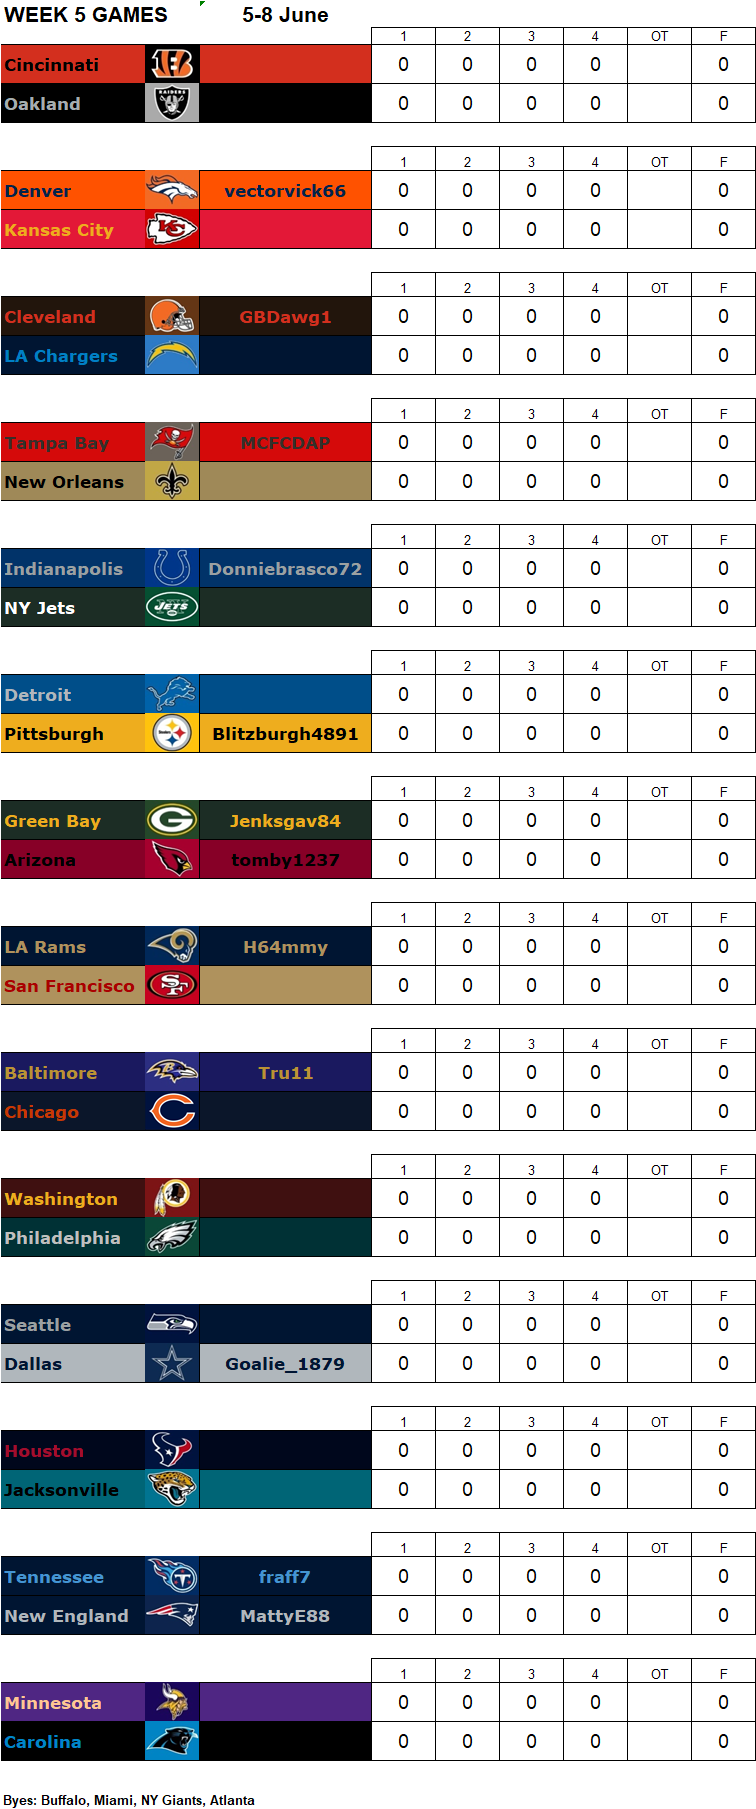 Week 5 Matchups, 5-8 June W5g17